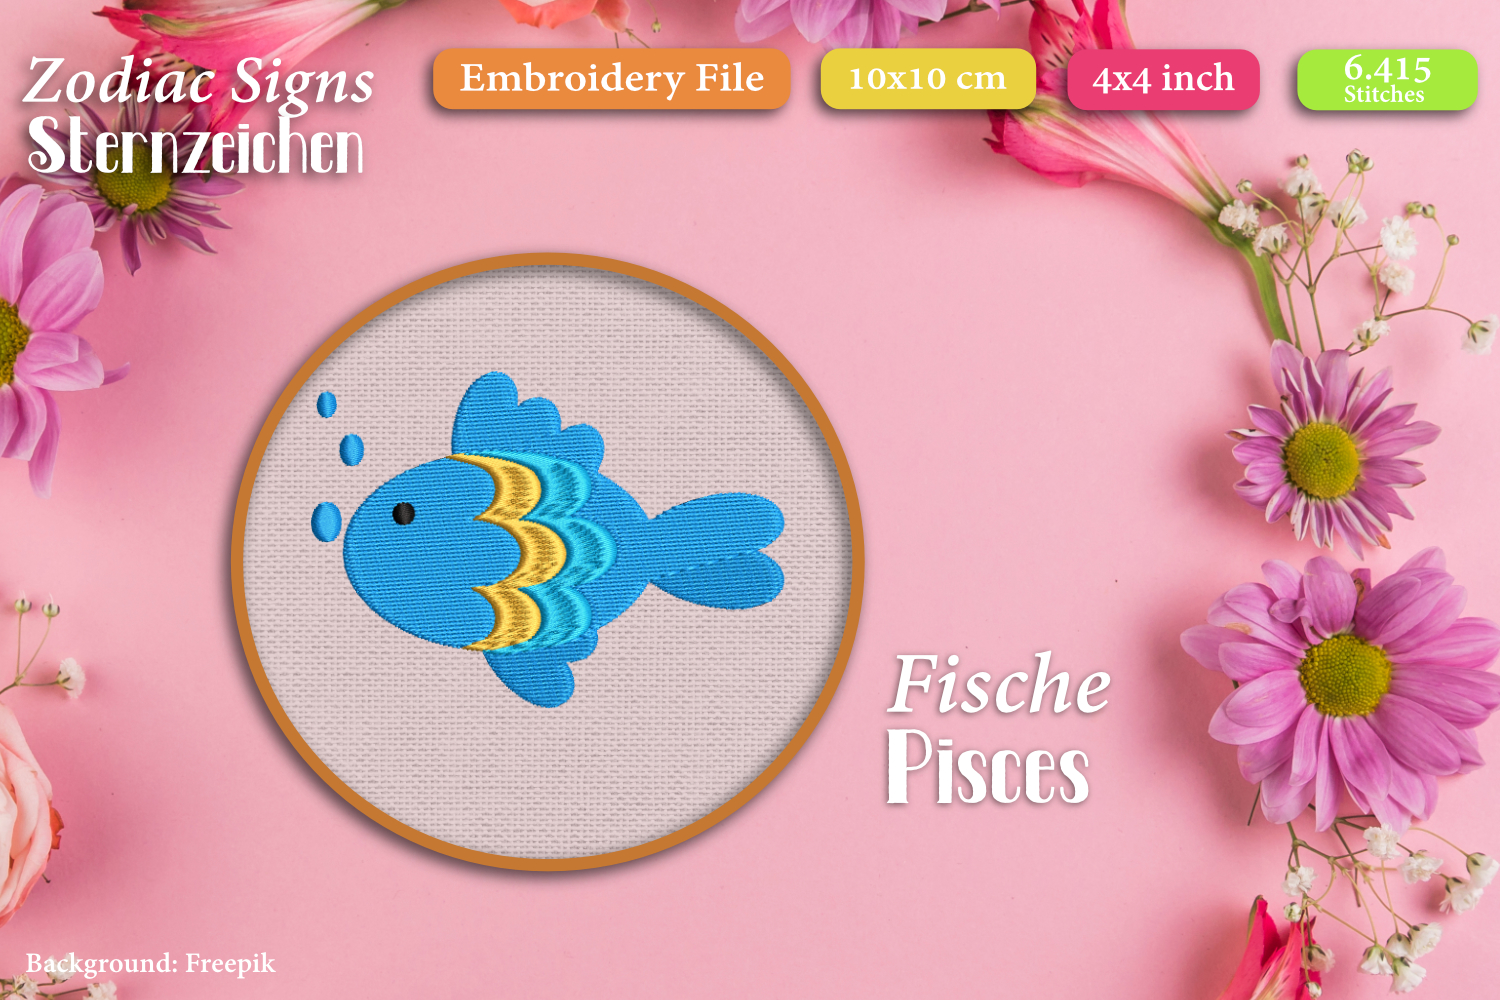 Zodiac signs - Embroidery Files - Bundle example image 4